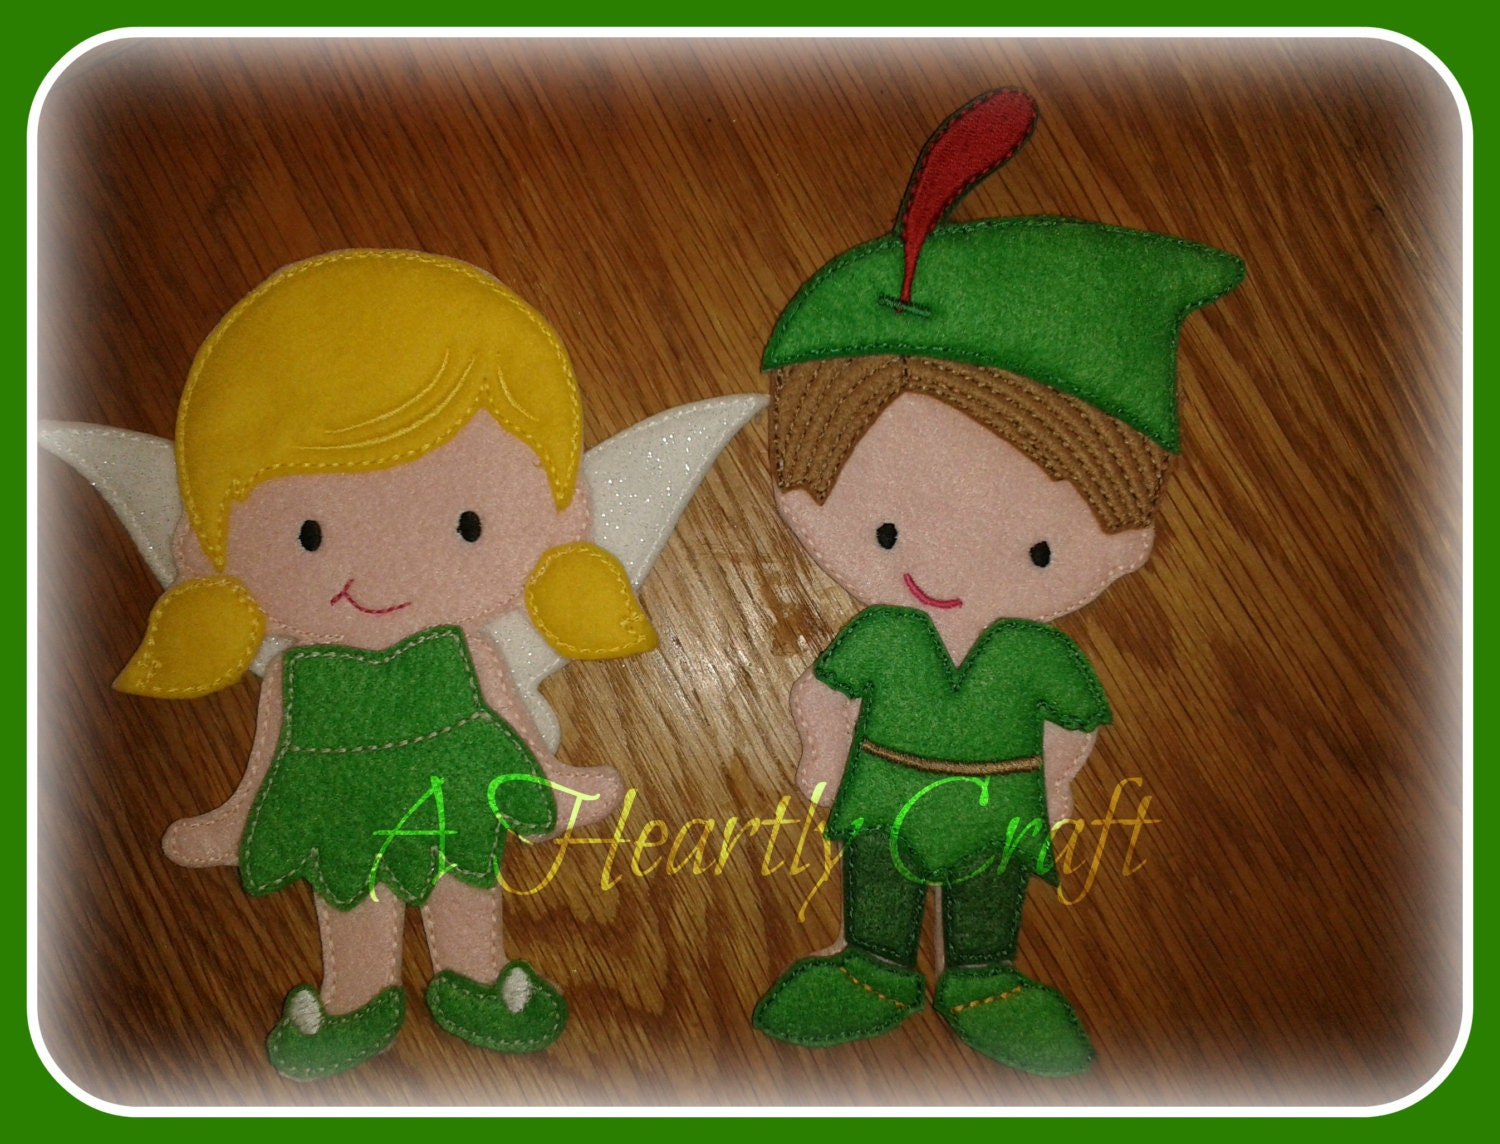 Peter Pan Outfit Only for my Non Paper Dolls Flat Doll Felt Play Quiet play. DOLL NOT INCLUDED